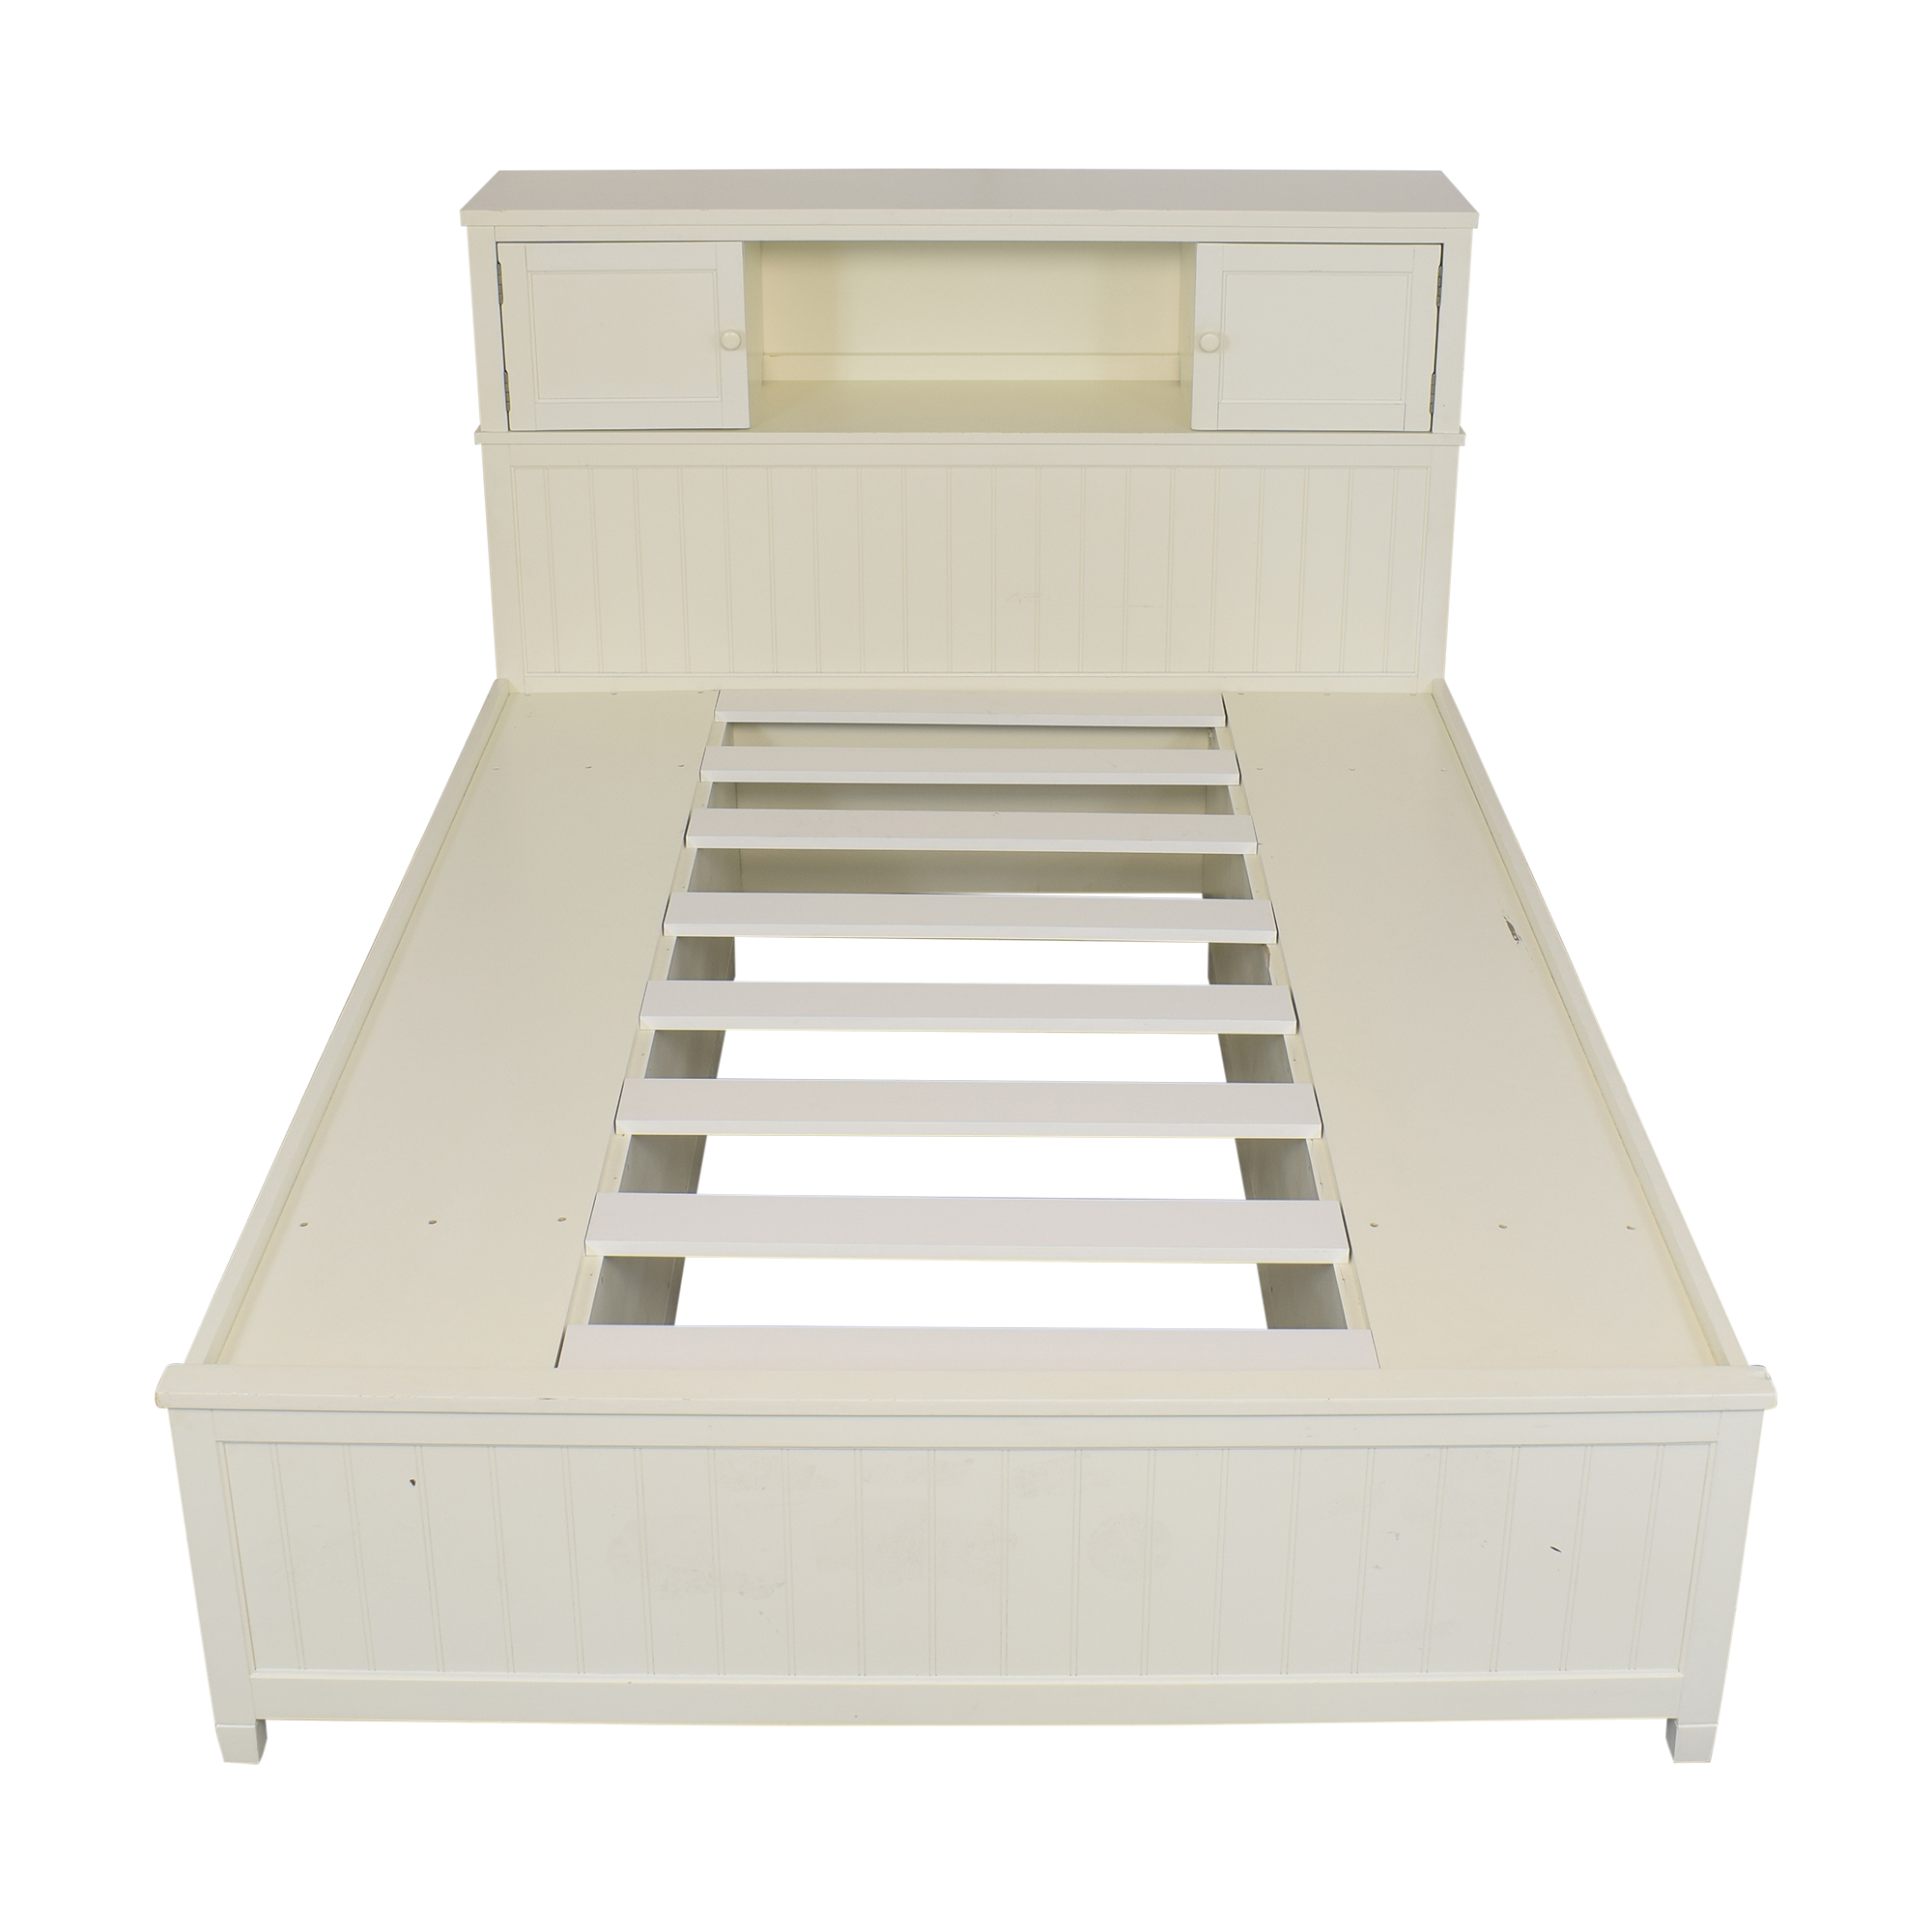 Pottery Barn Teen Pottery Barn Teen Queen Beadboard Storage Bed on sale